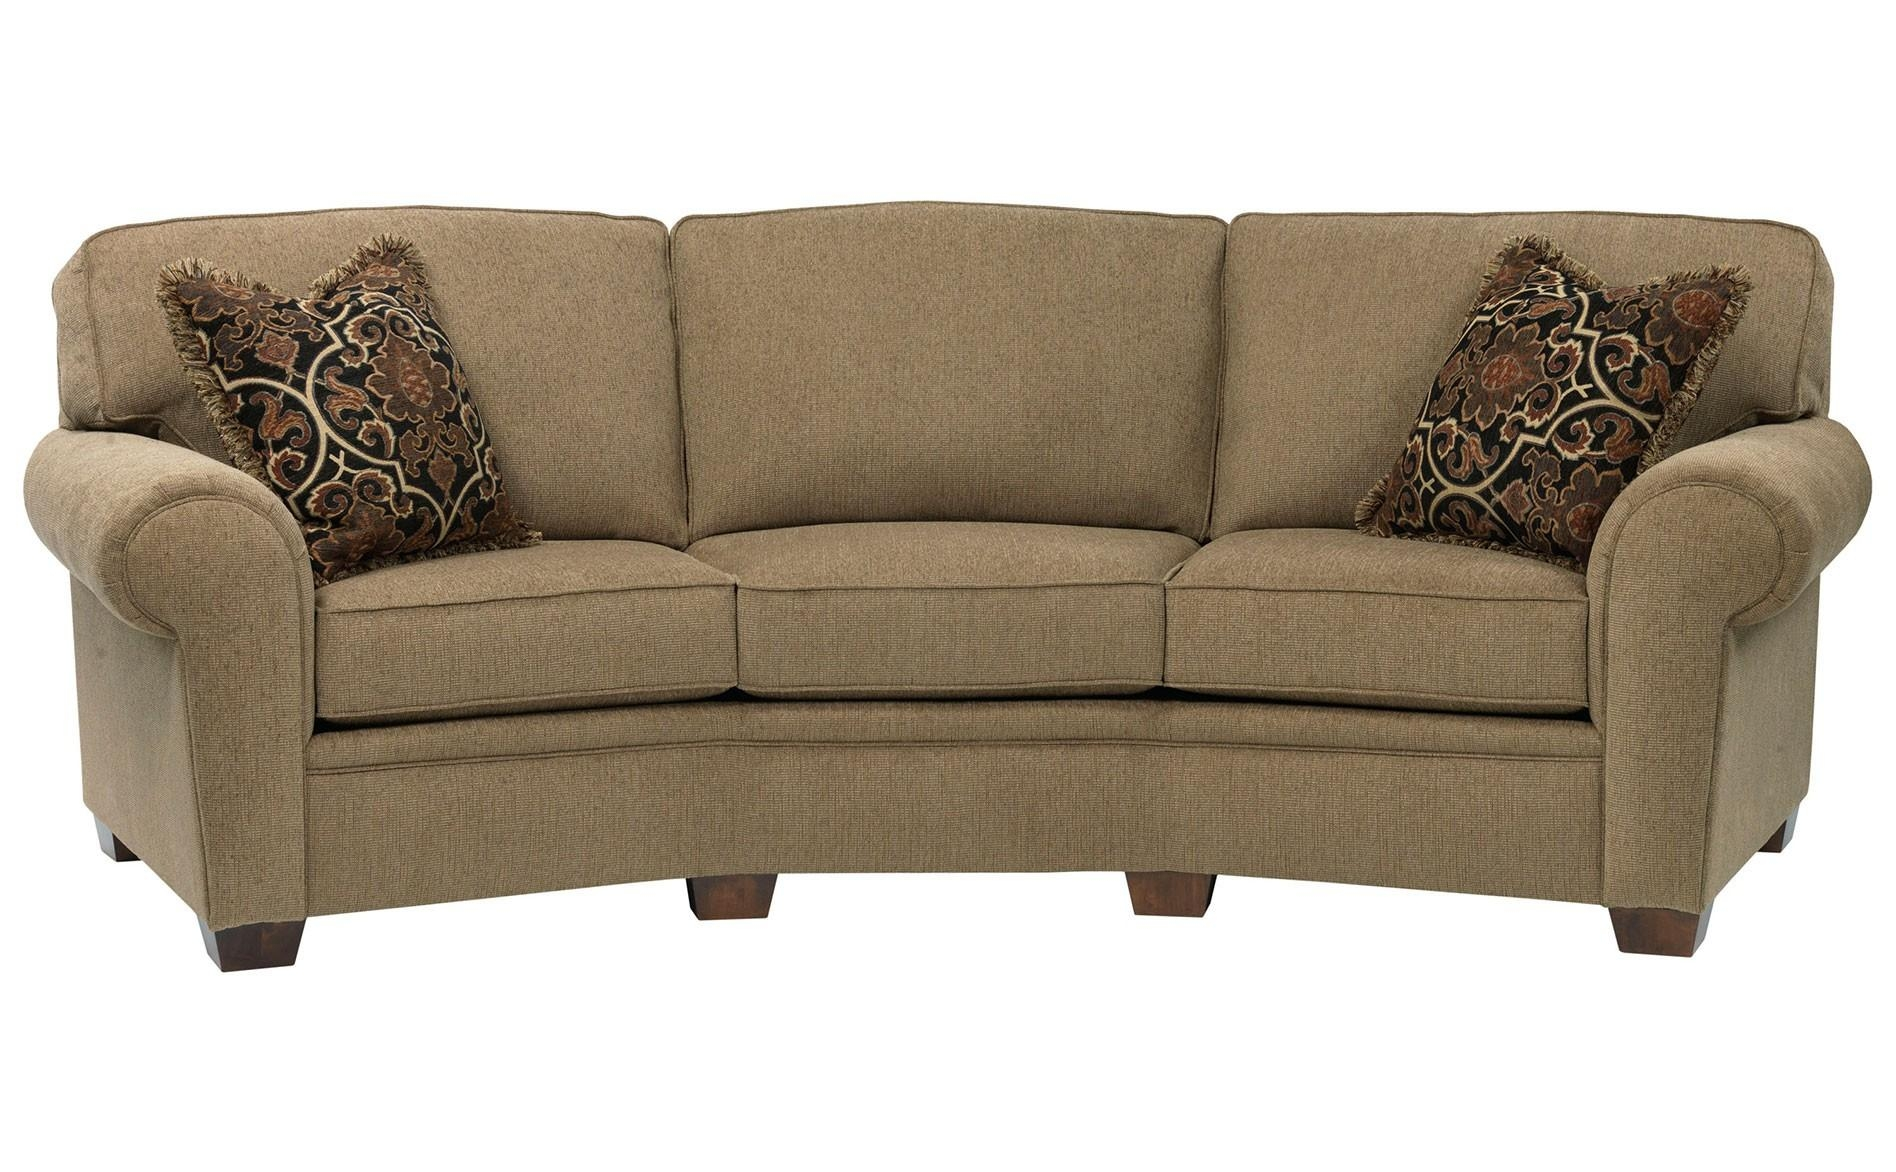 Furniture: Flex Steel Couch | Broyhill Recliner Sofas | Broyhill Sofa Intended For Broyhill Reclining Sofas (Image 14 of 20)